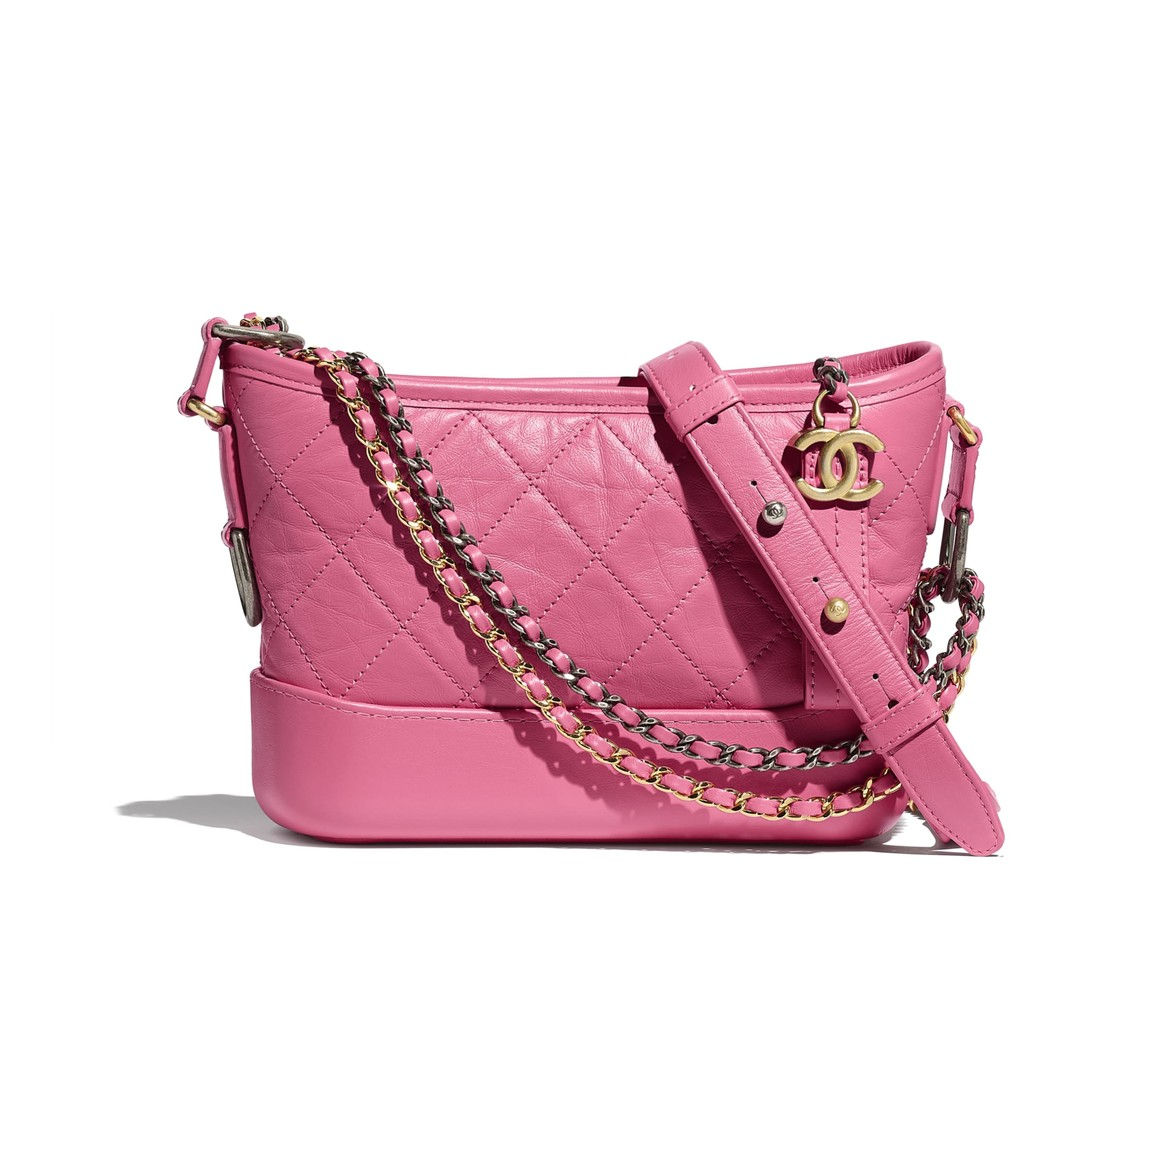 chanel's gabrielle small hobo bag HK$31,300